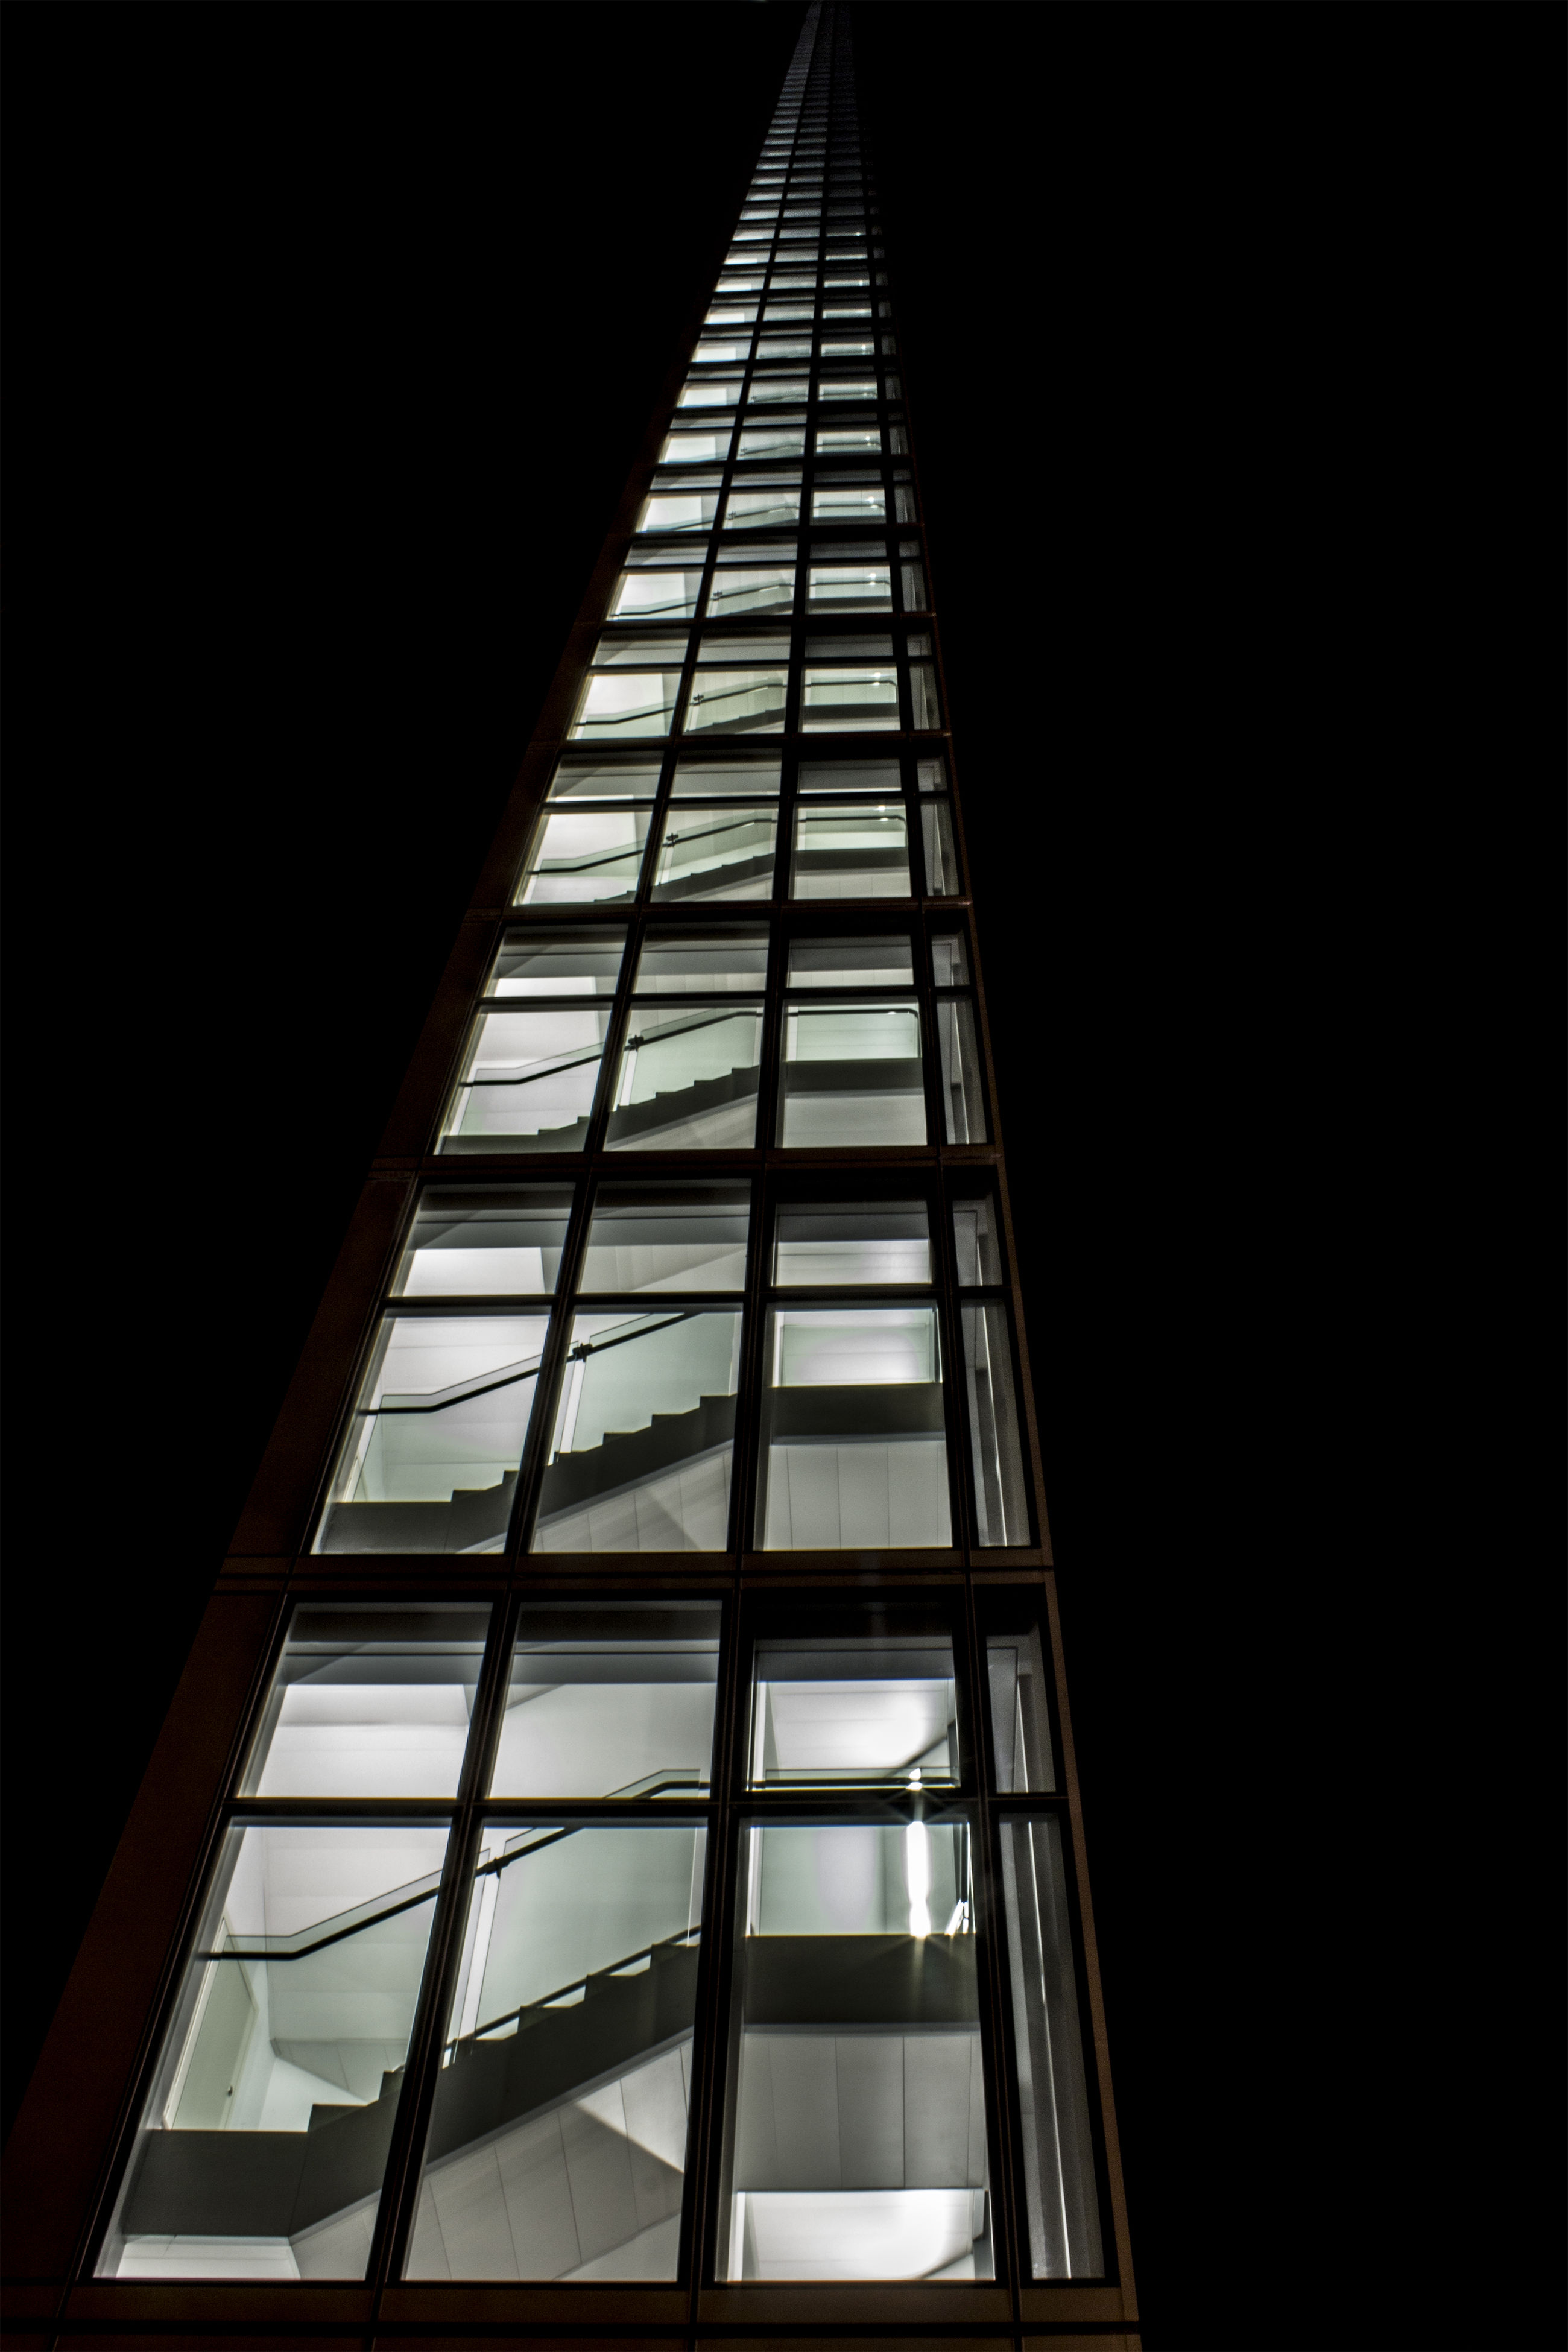 window, low angle view, architecture, built structure, no people, building exterior, indoors, day, modern